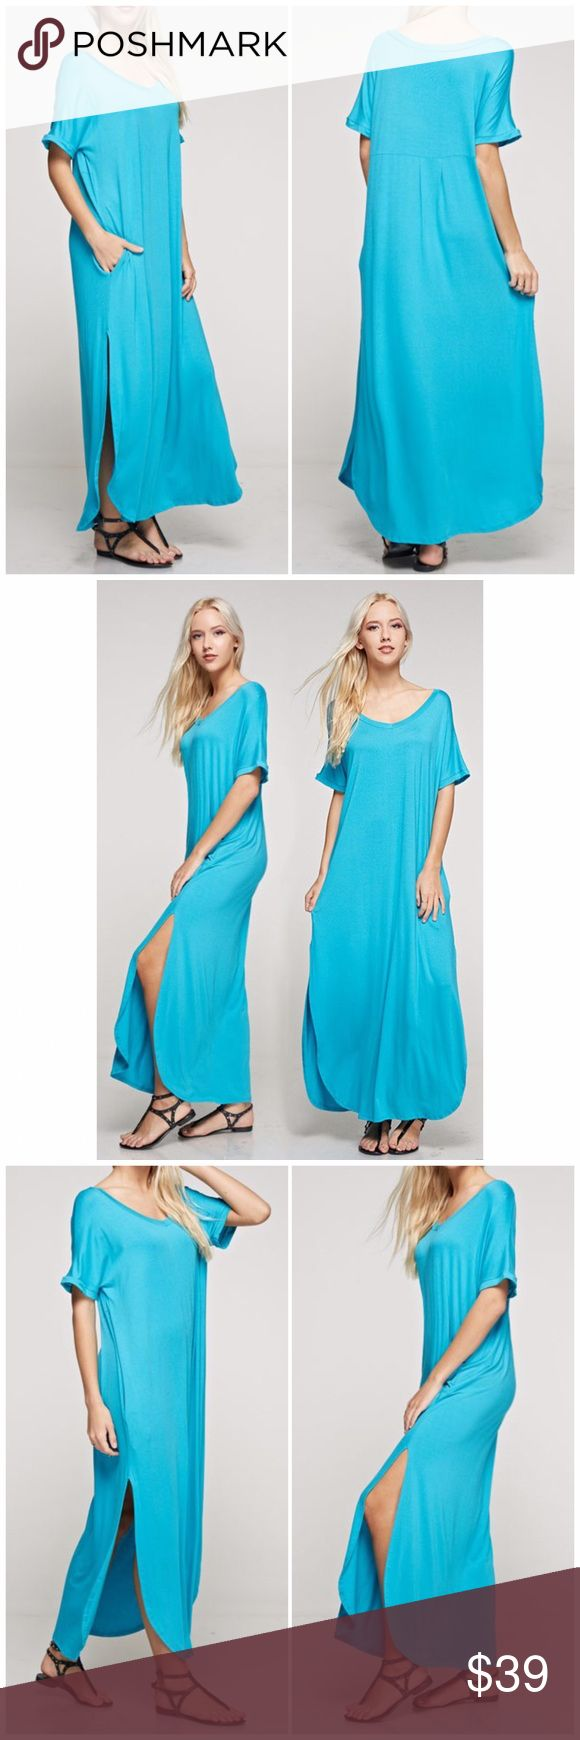 The Must Have Turquoise Maxi Dress The must have Maxi Dress for spring and summer! Loose fitting Turquoise dress that Features a v-neck, 2 pockets and 2 side slits. 95% Rayon, 5% spandex. Fabfindz Dresses Maxi